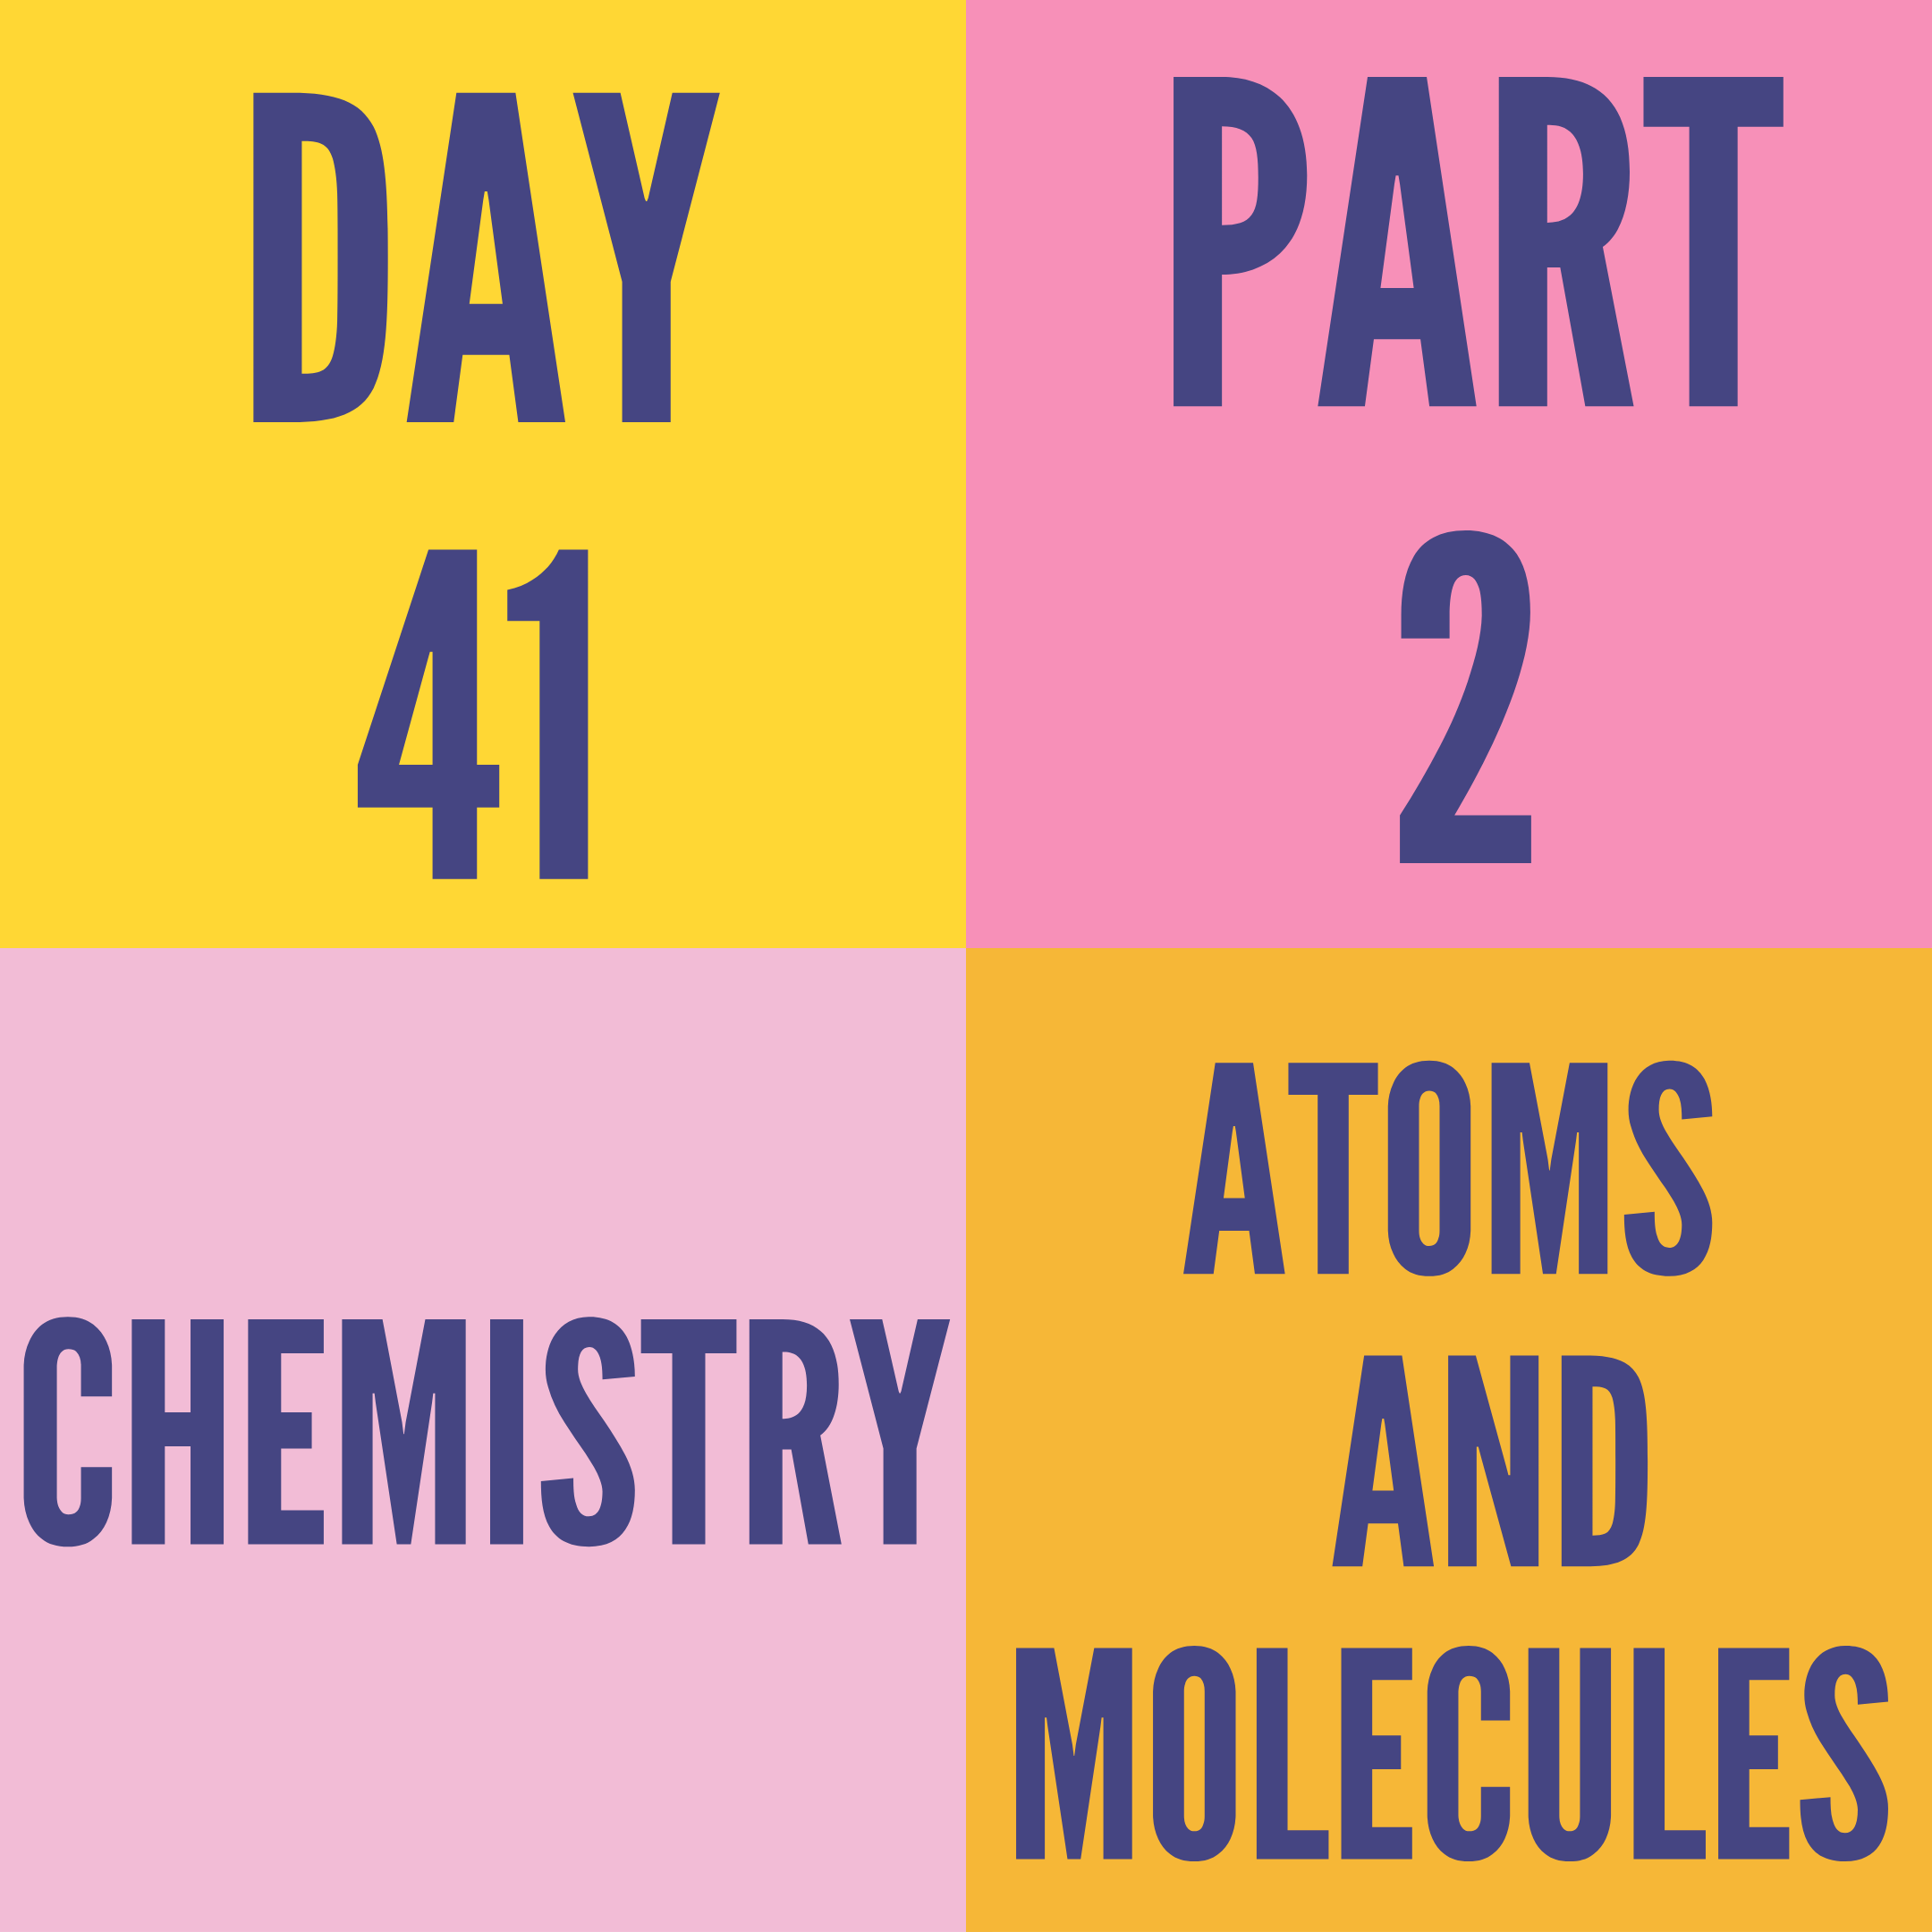 DAY-41 PART-2 ATOMS AND MOLECULES